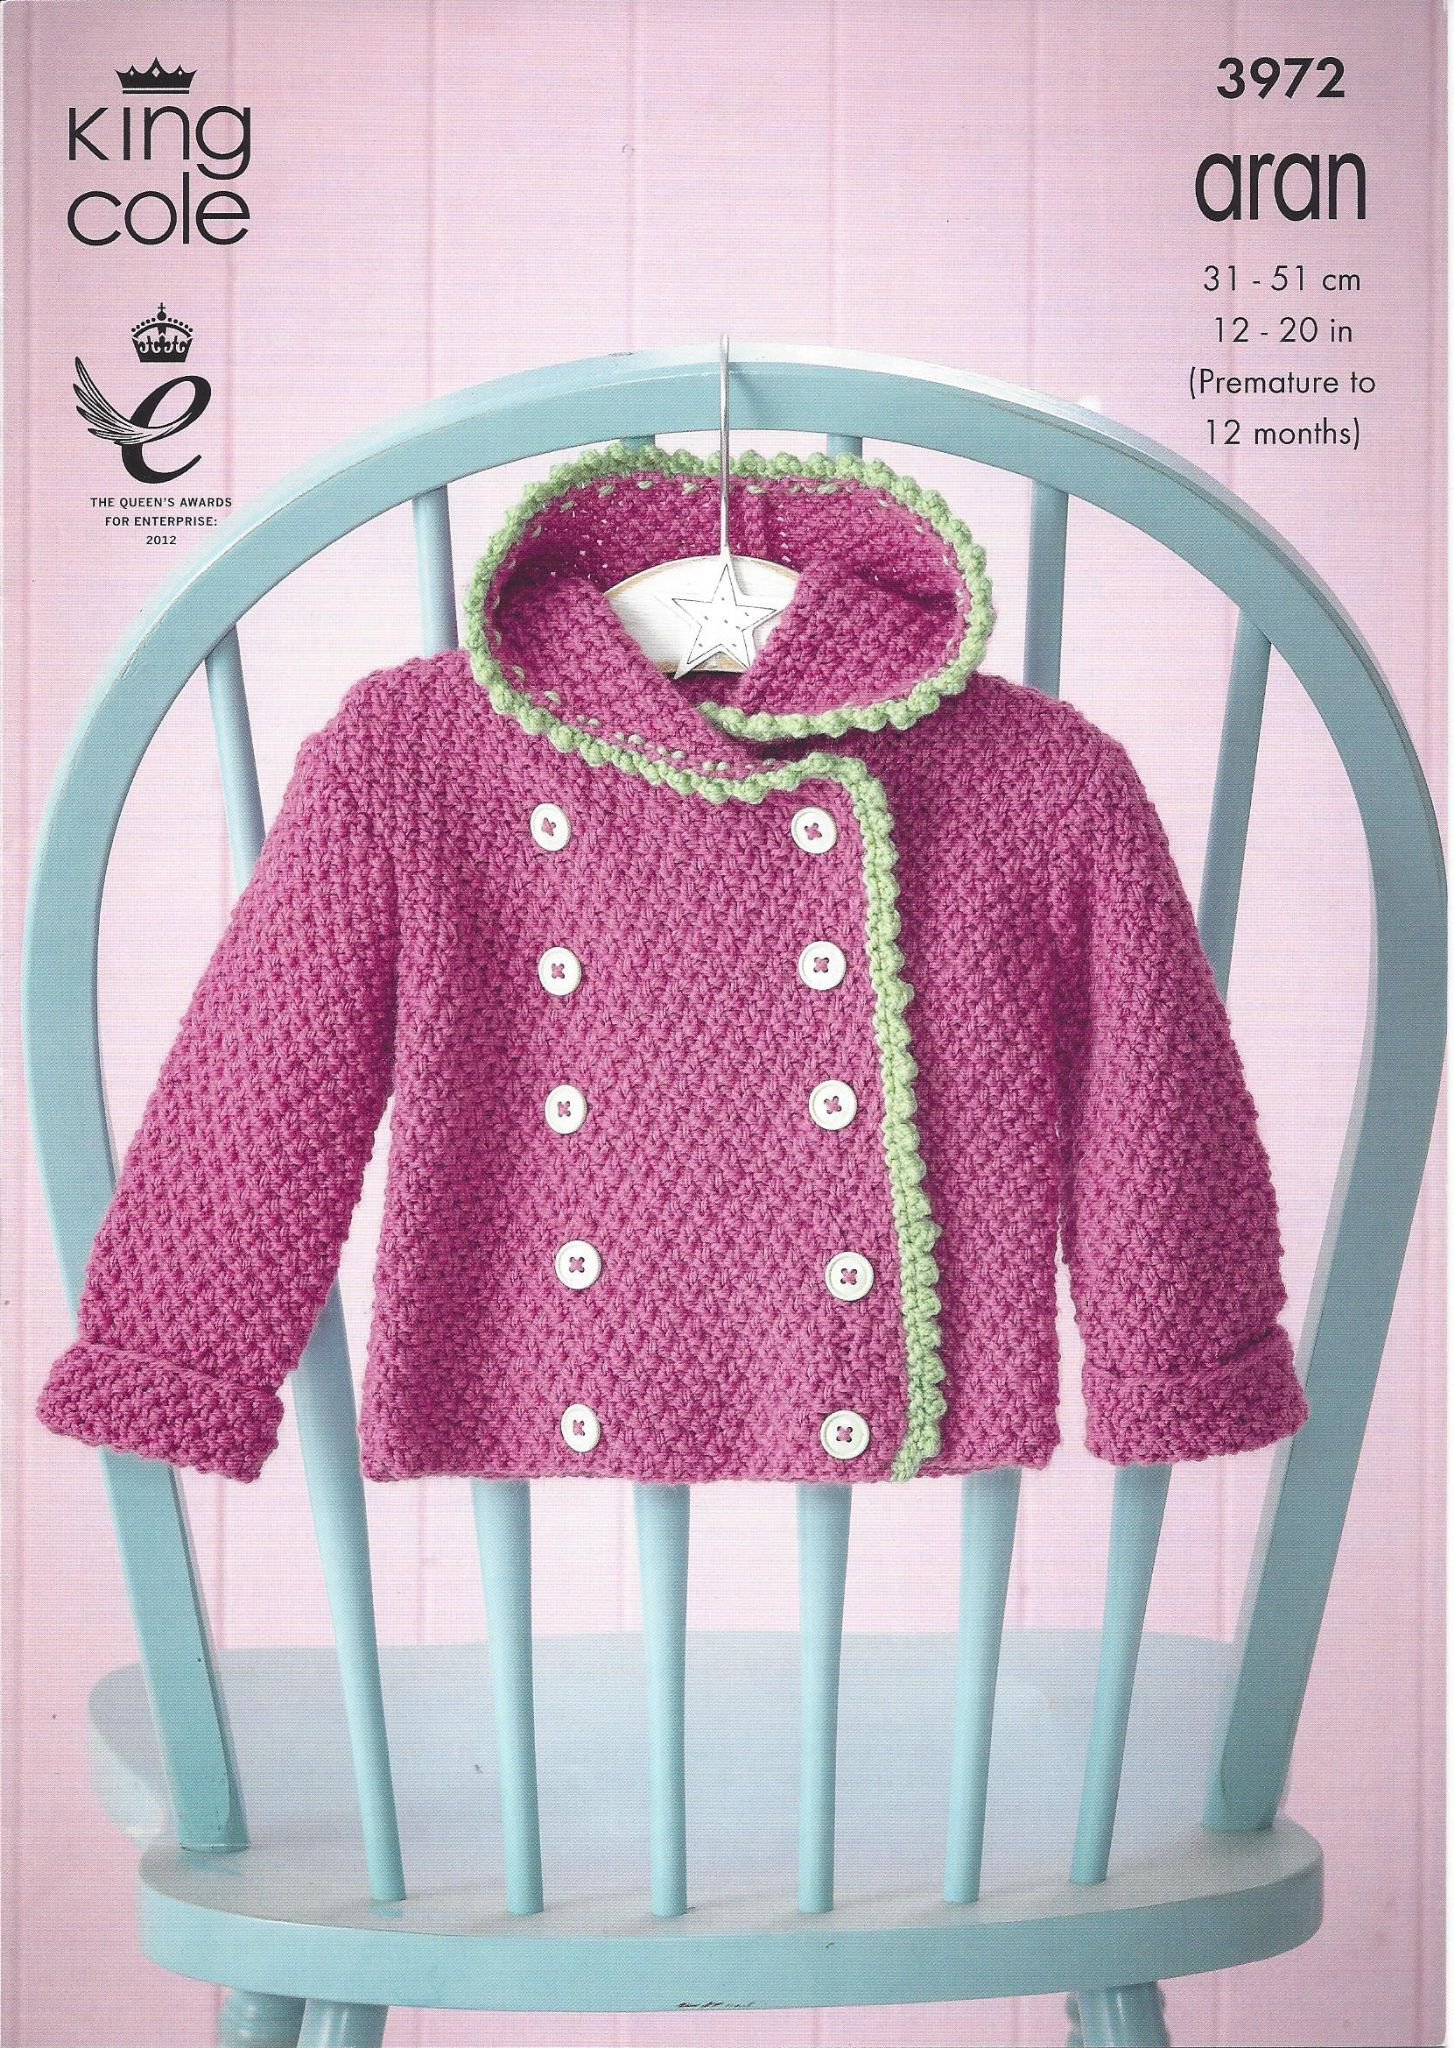 King cole aran knitting pattern 3972 coat dress hoodie bootees bankloansurffo Gallery